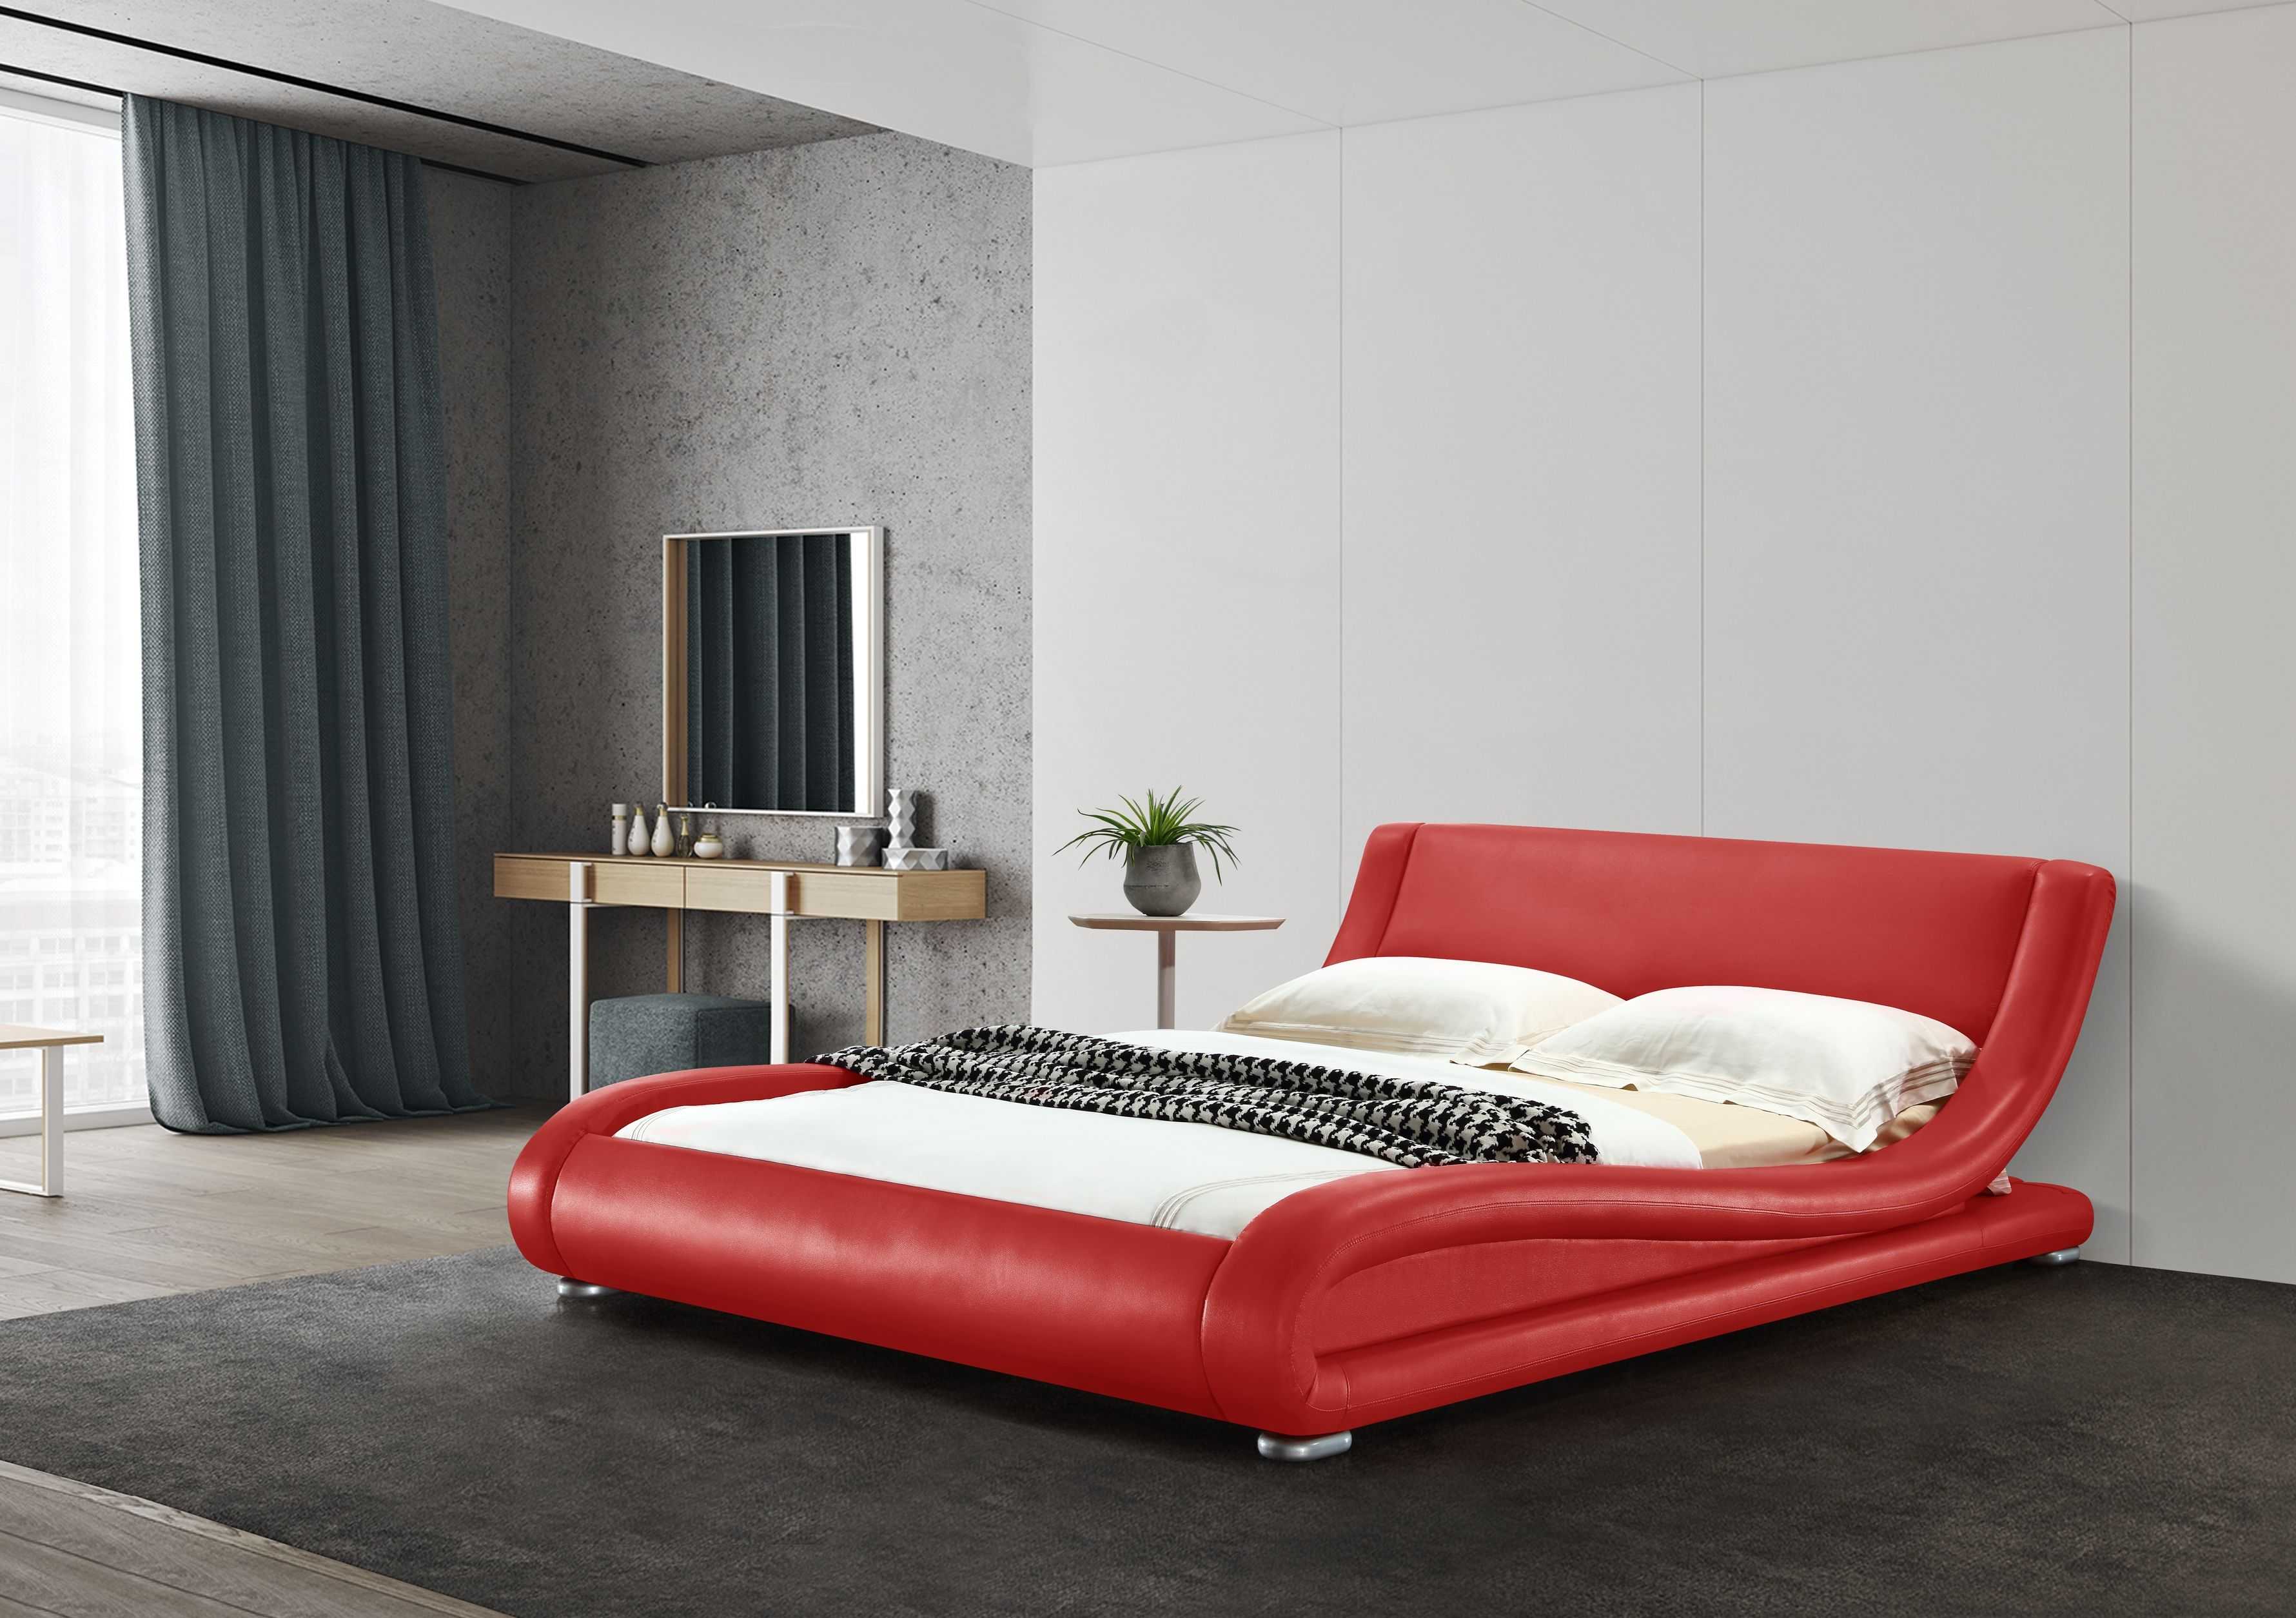 Greatime B Contemporary Upholstered Platform Bed